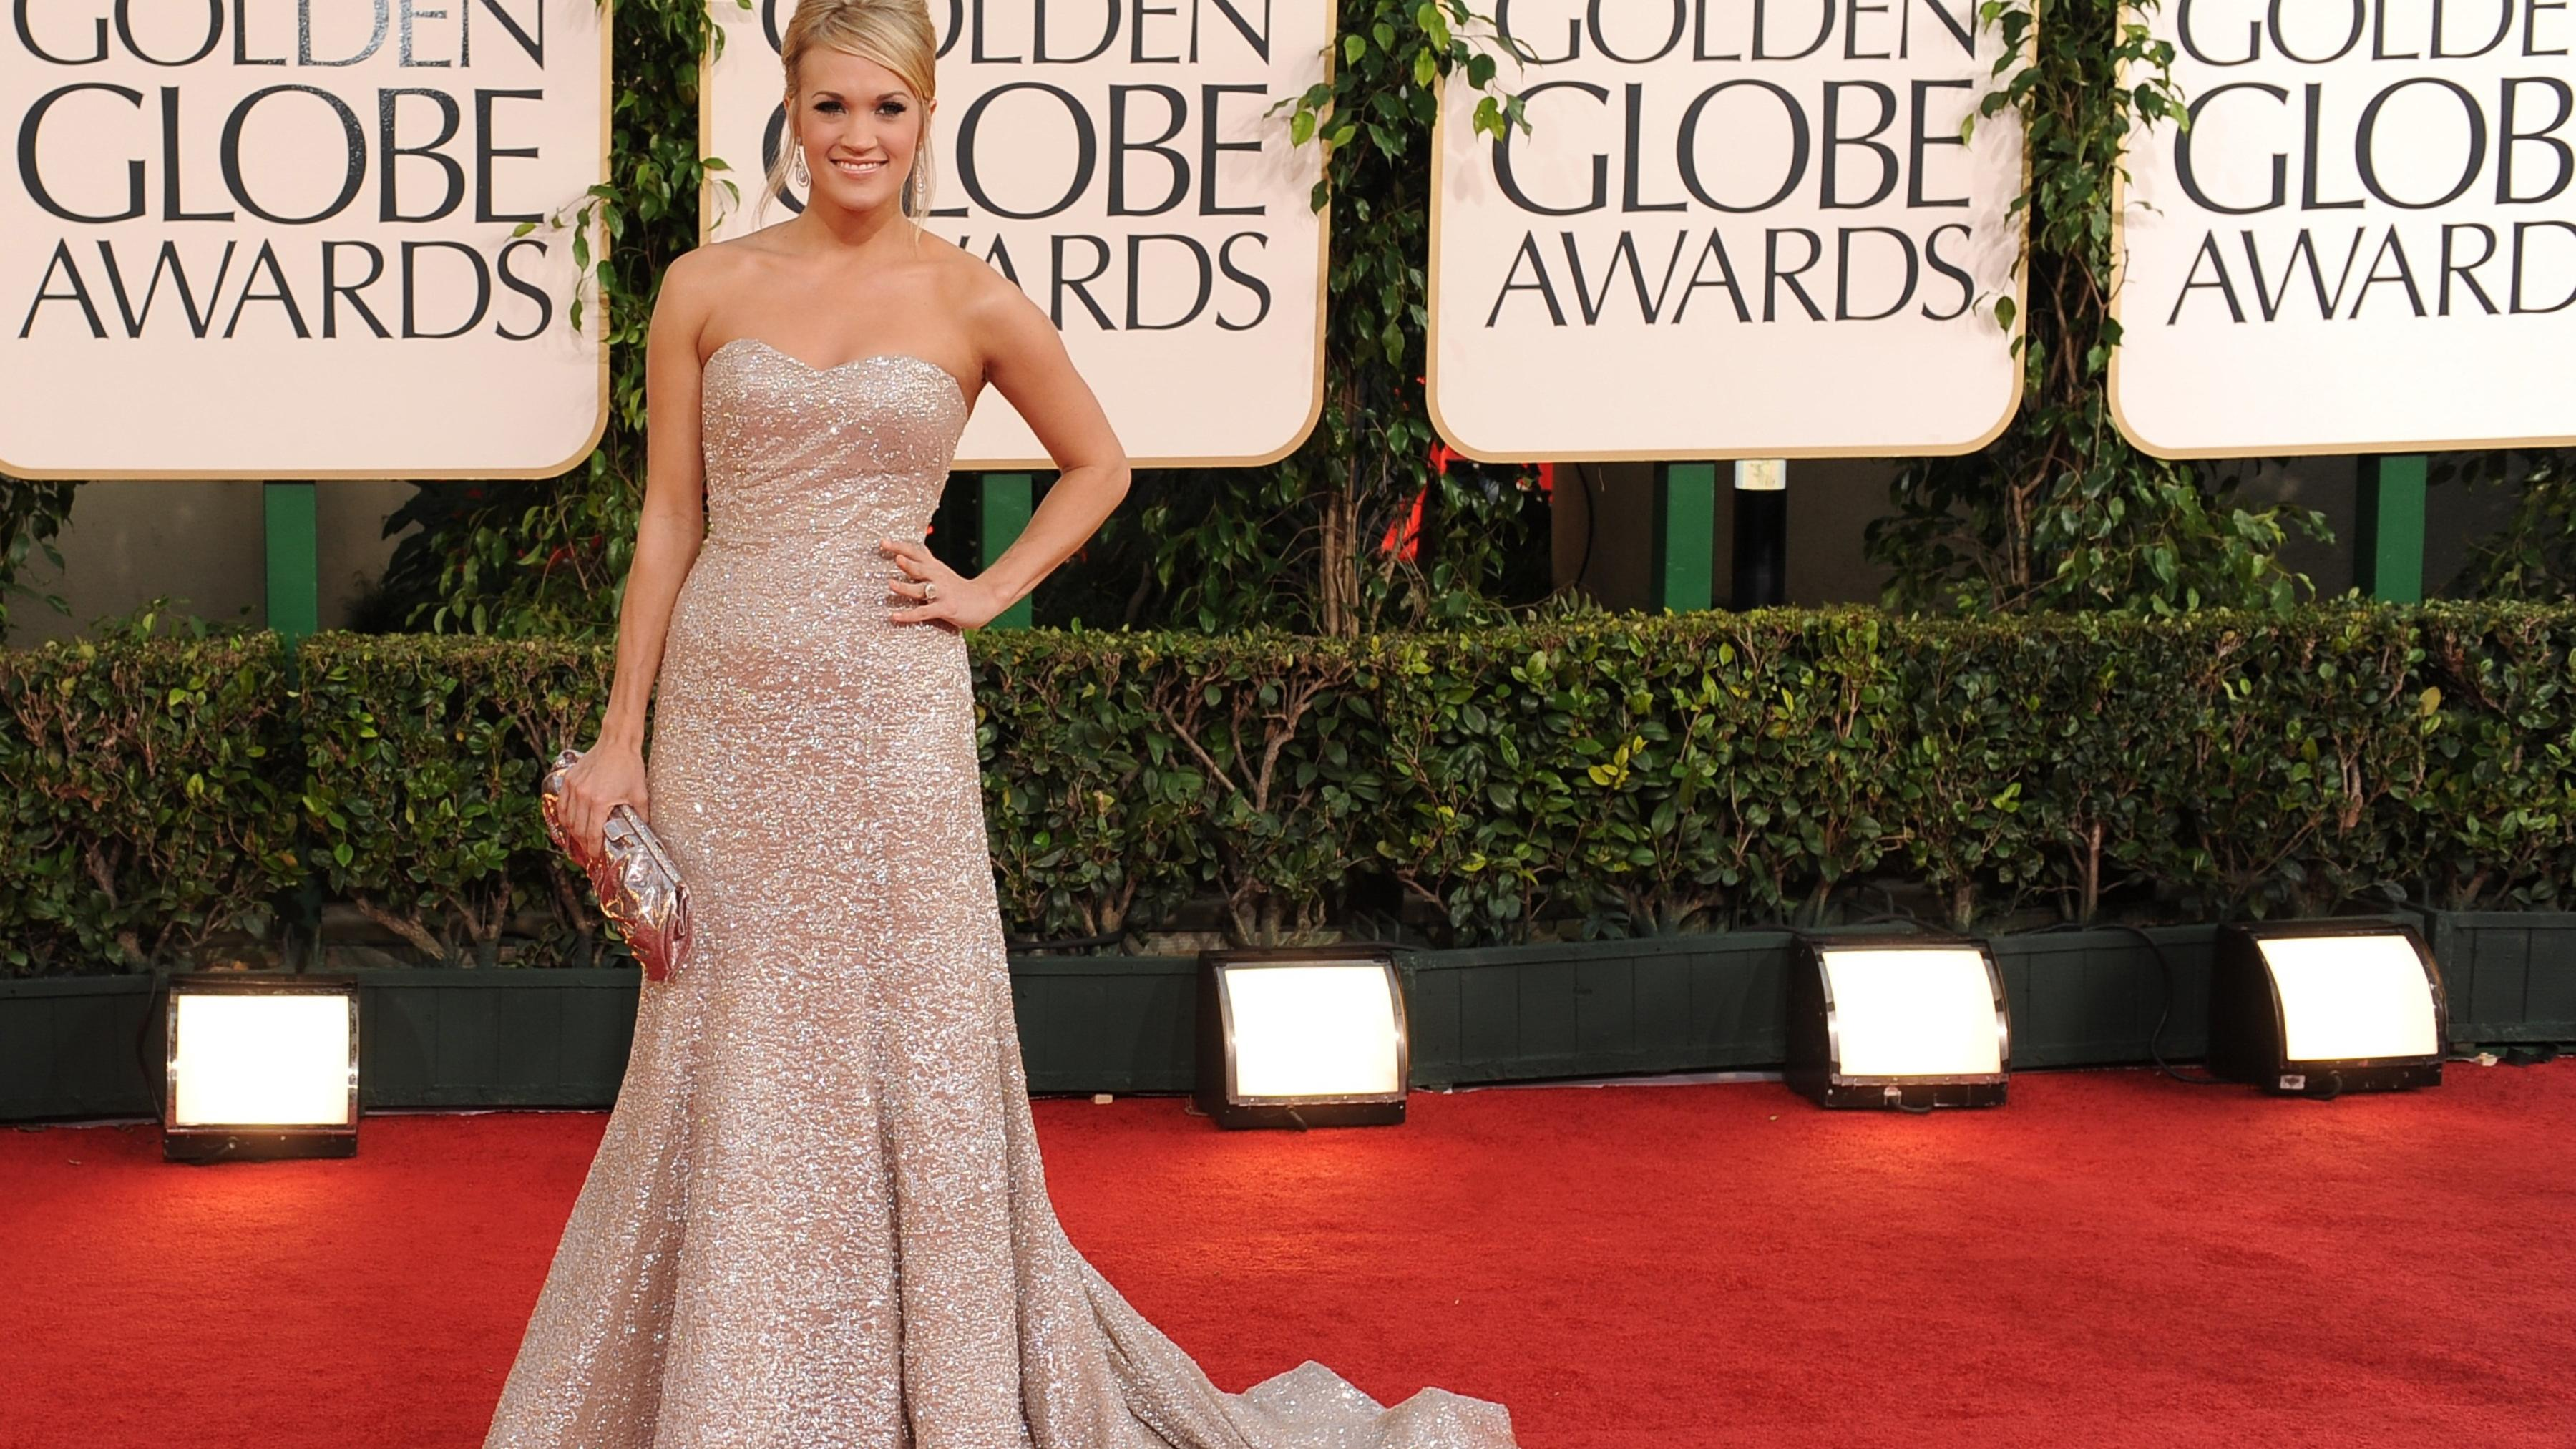 Carrie Underwood arrives at the Golden Globe awards on January 16, 2011. (Photo by Robyn Beck/AFP/Getty Images)